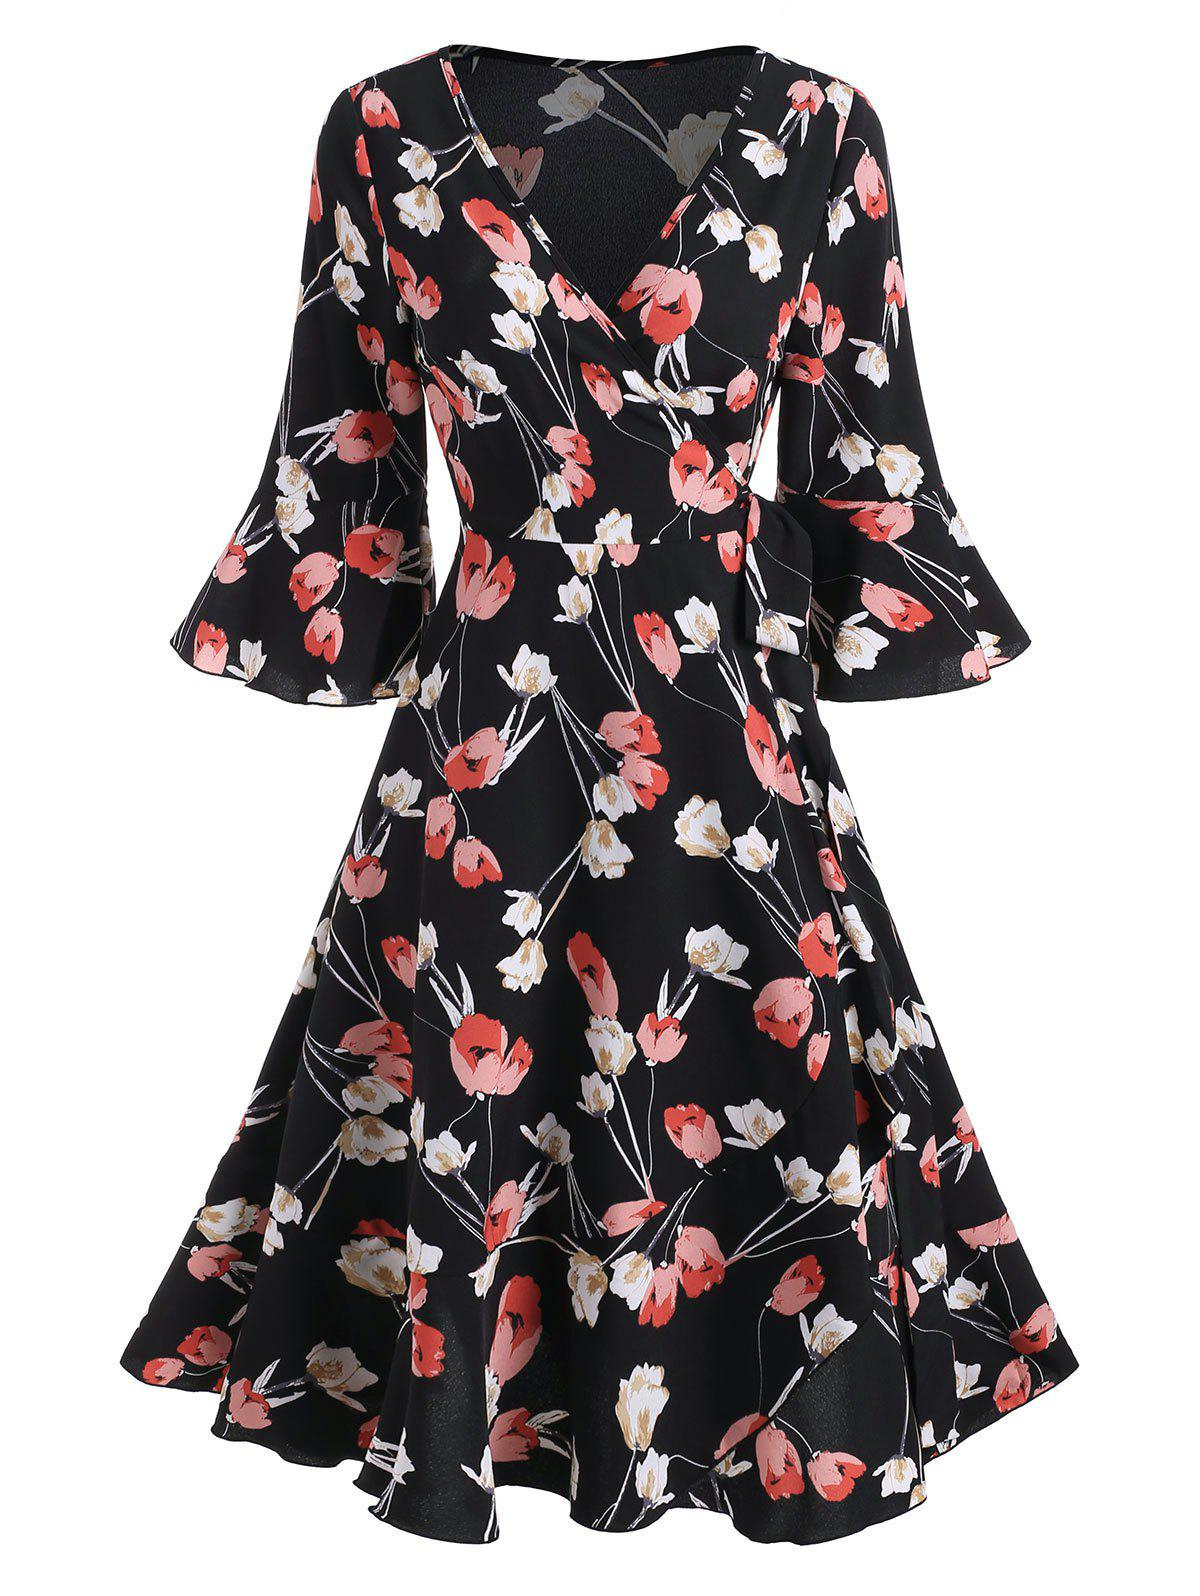 New Floral Print V Neck Ruffled Wrap Dress